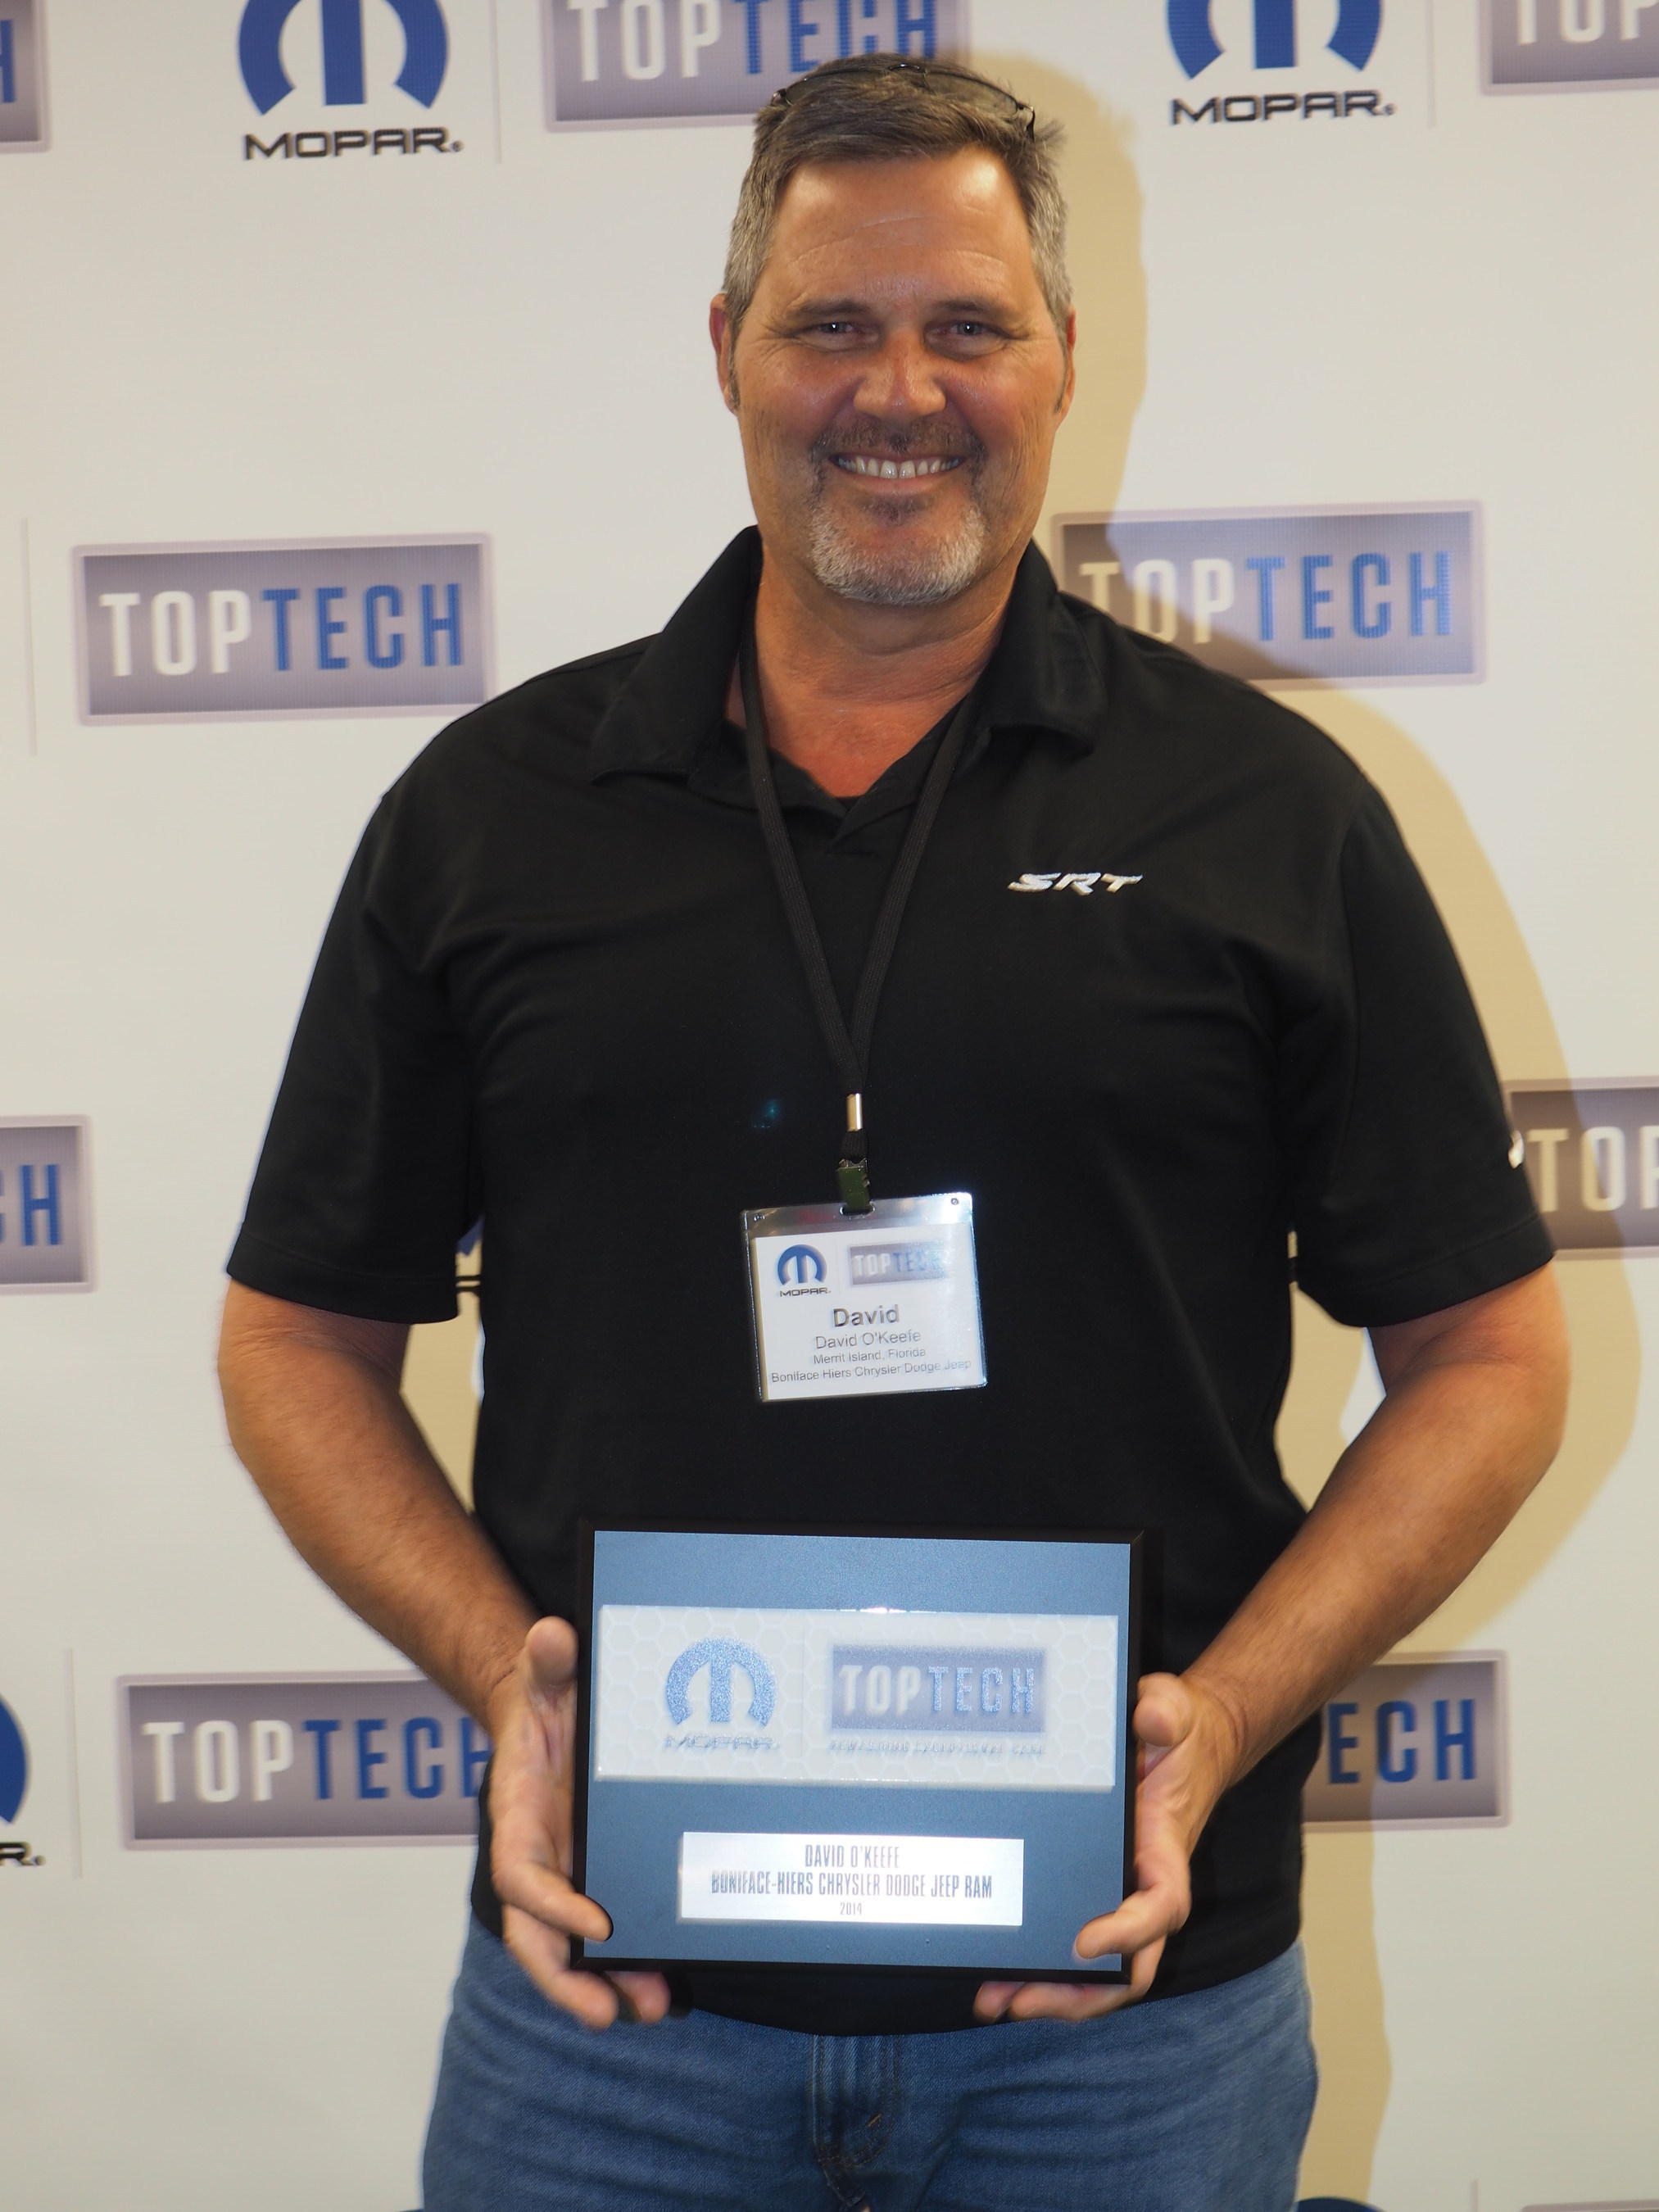 Florida FCA US Technicians Baroni and O Keefe Earn Mopar Top Tech